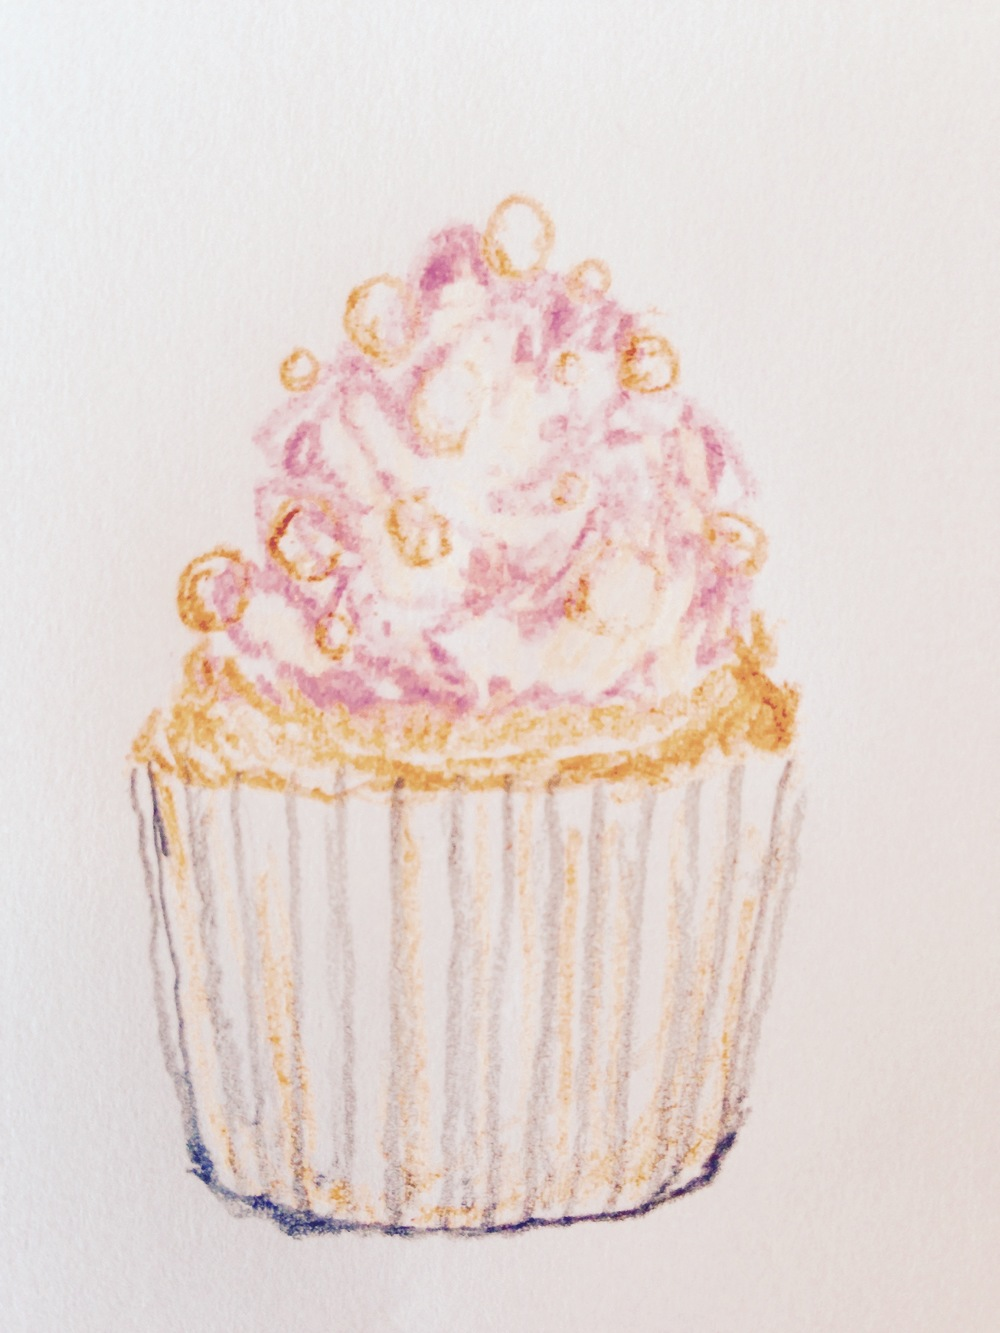 Bite size bits of cupcake heaven, obviously shown about 100 times the actual size.    Illustration by Heather Phillips